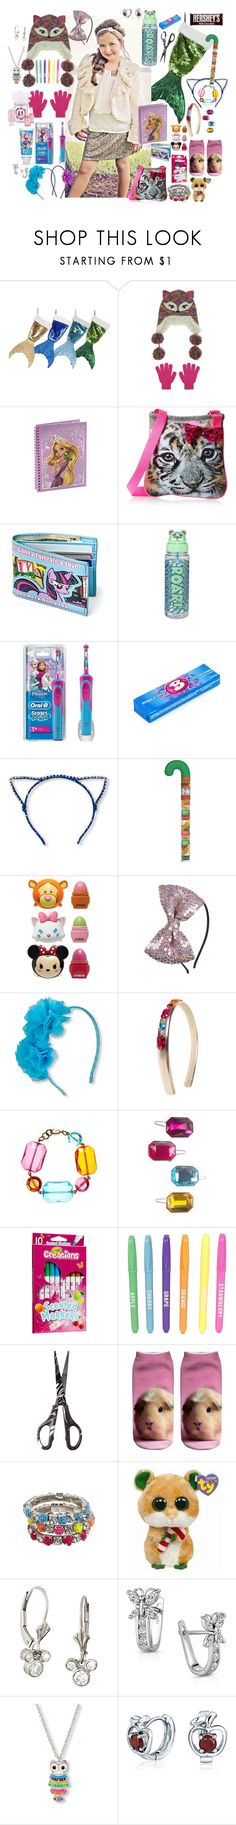 """tween girl stocking"" by sterlingkitten on Polyvore featuring Capelli New York, Disney, Cotton Candy, Hershey's, Gymboree, Boohoo and Bling Jewelry"